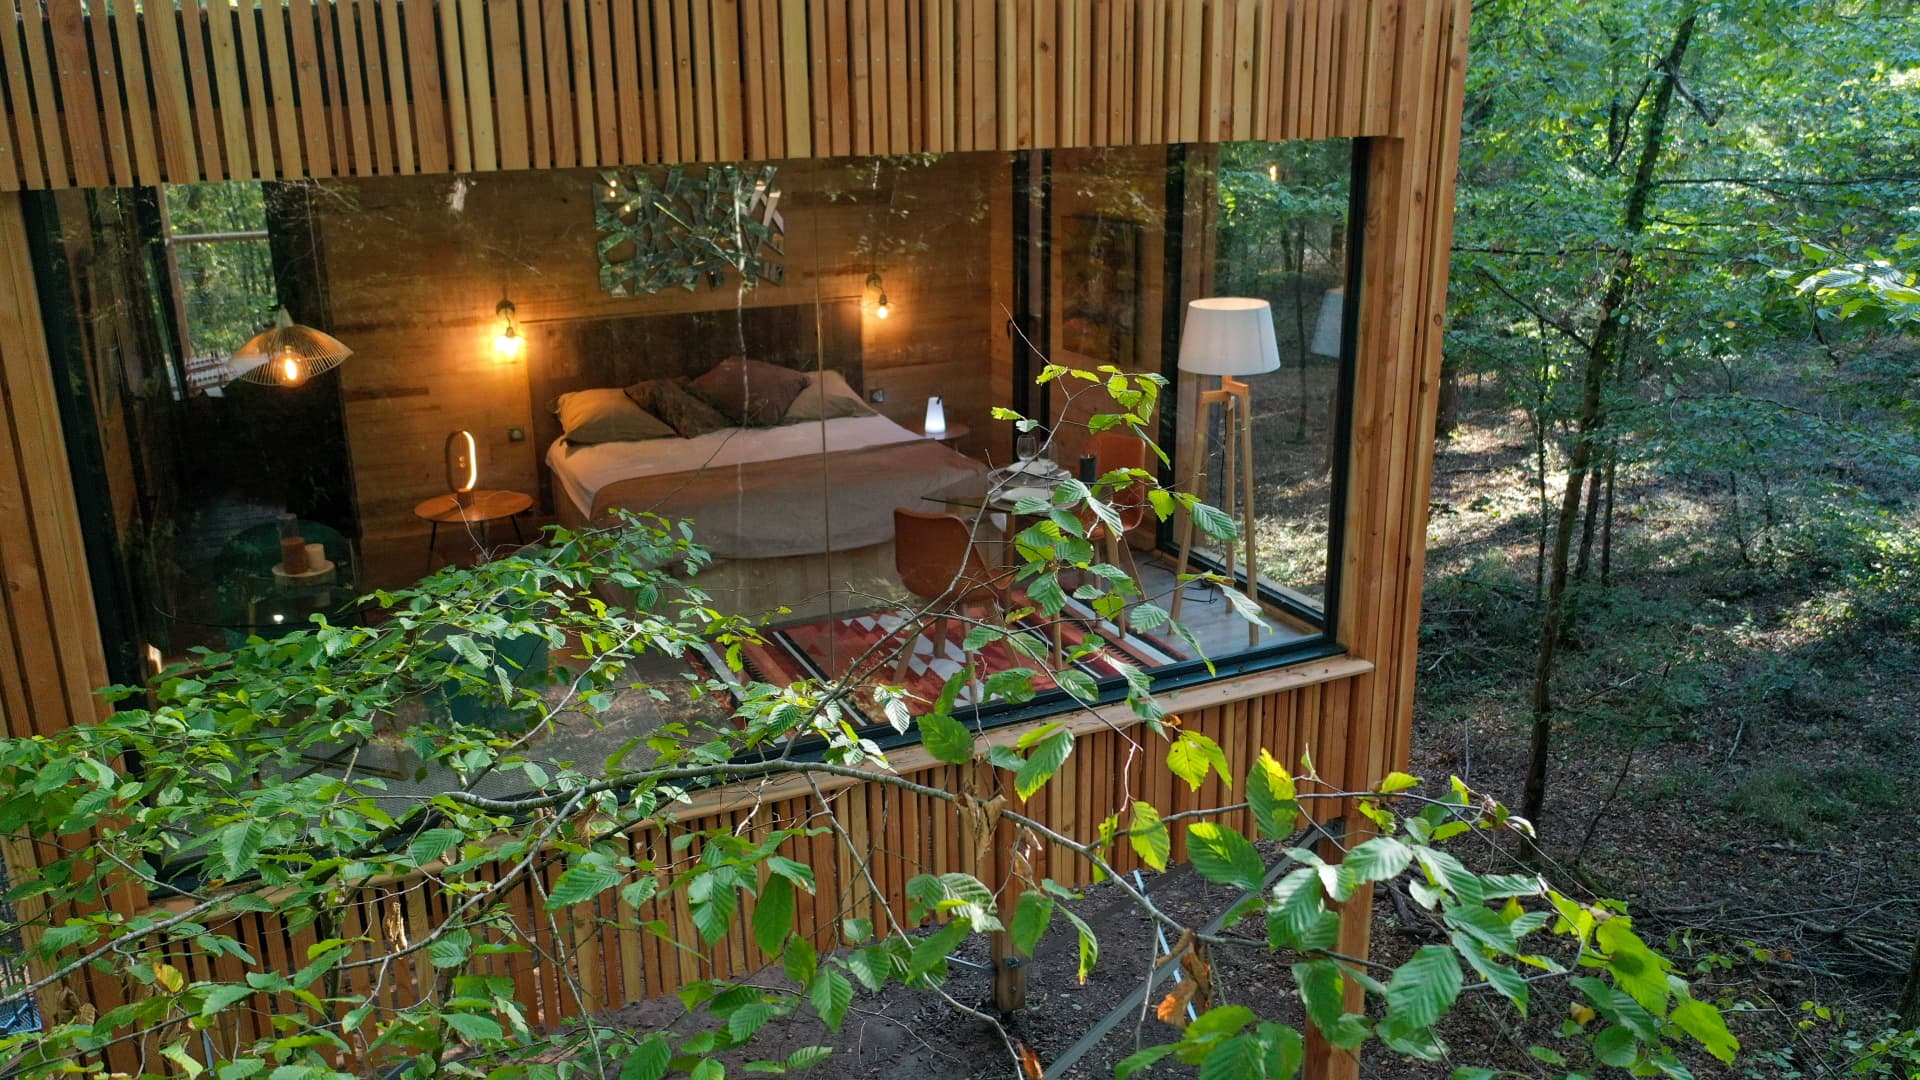 Loire Valley Lodges leans heavily upon local produce and grows herbs and fruit on-site, according to its website.